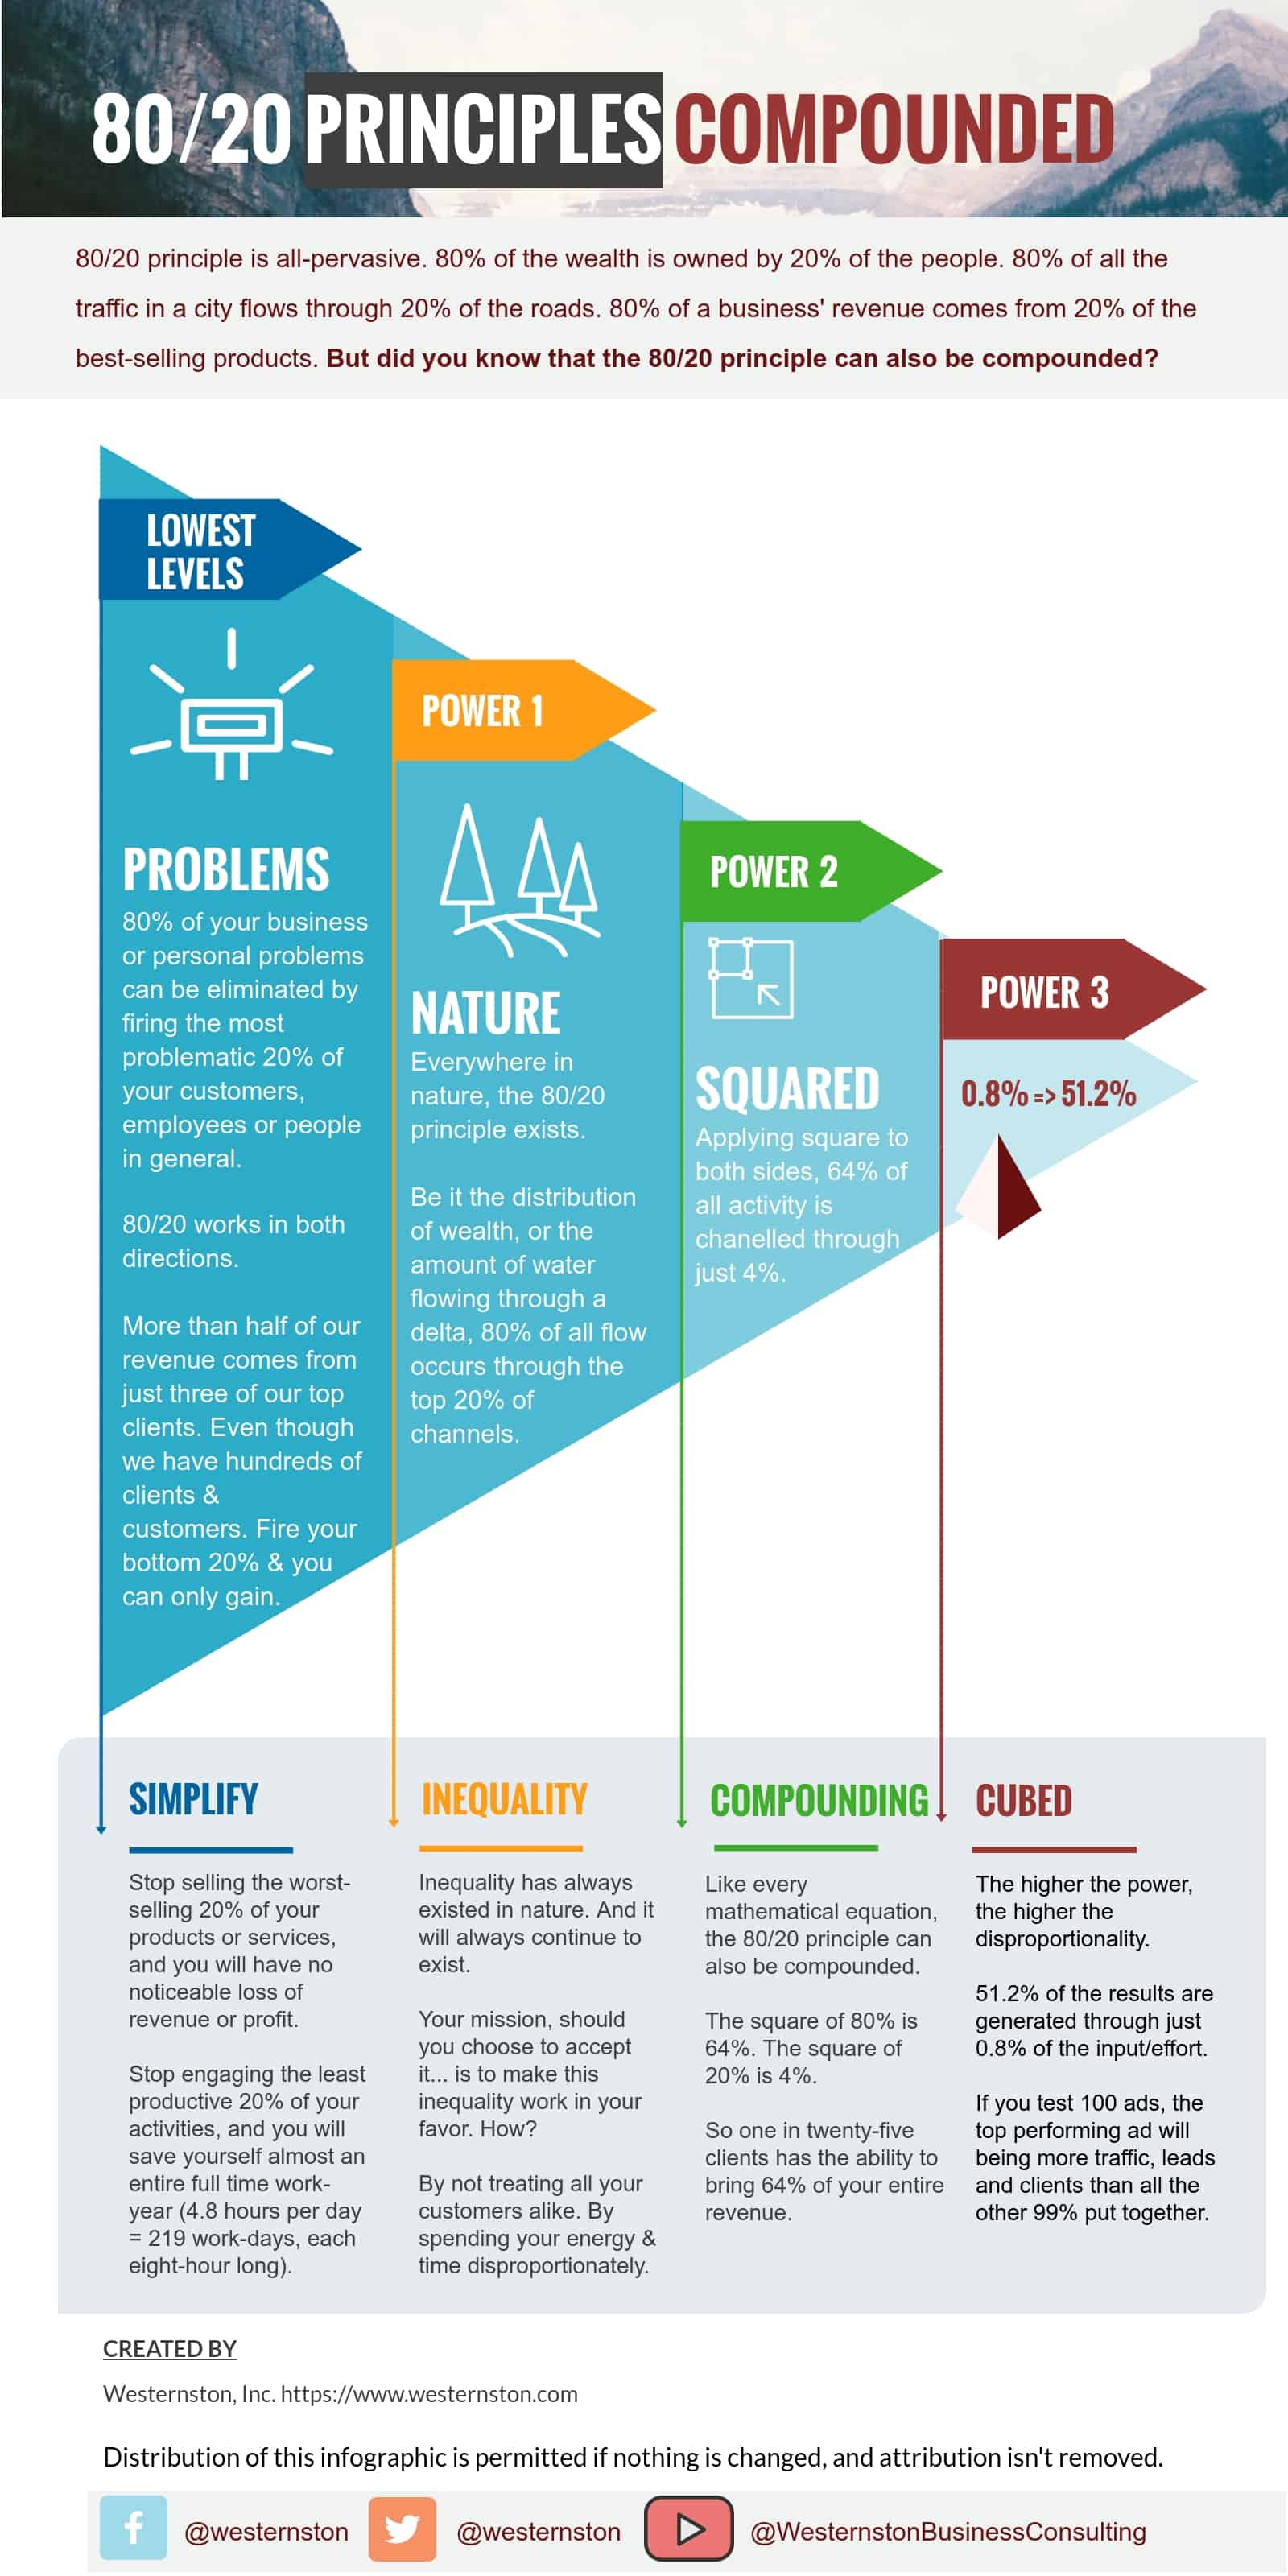 80/20 Compounded: An infographic by Westernston